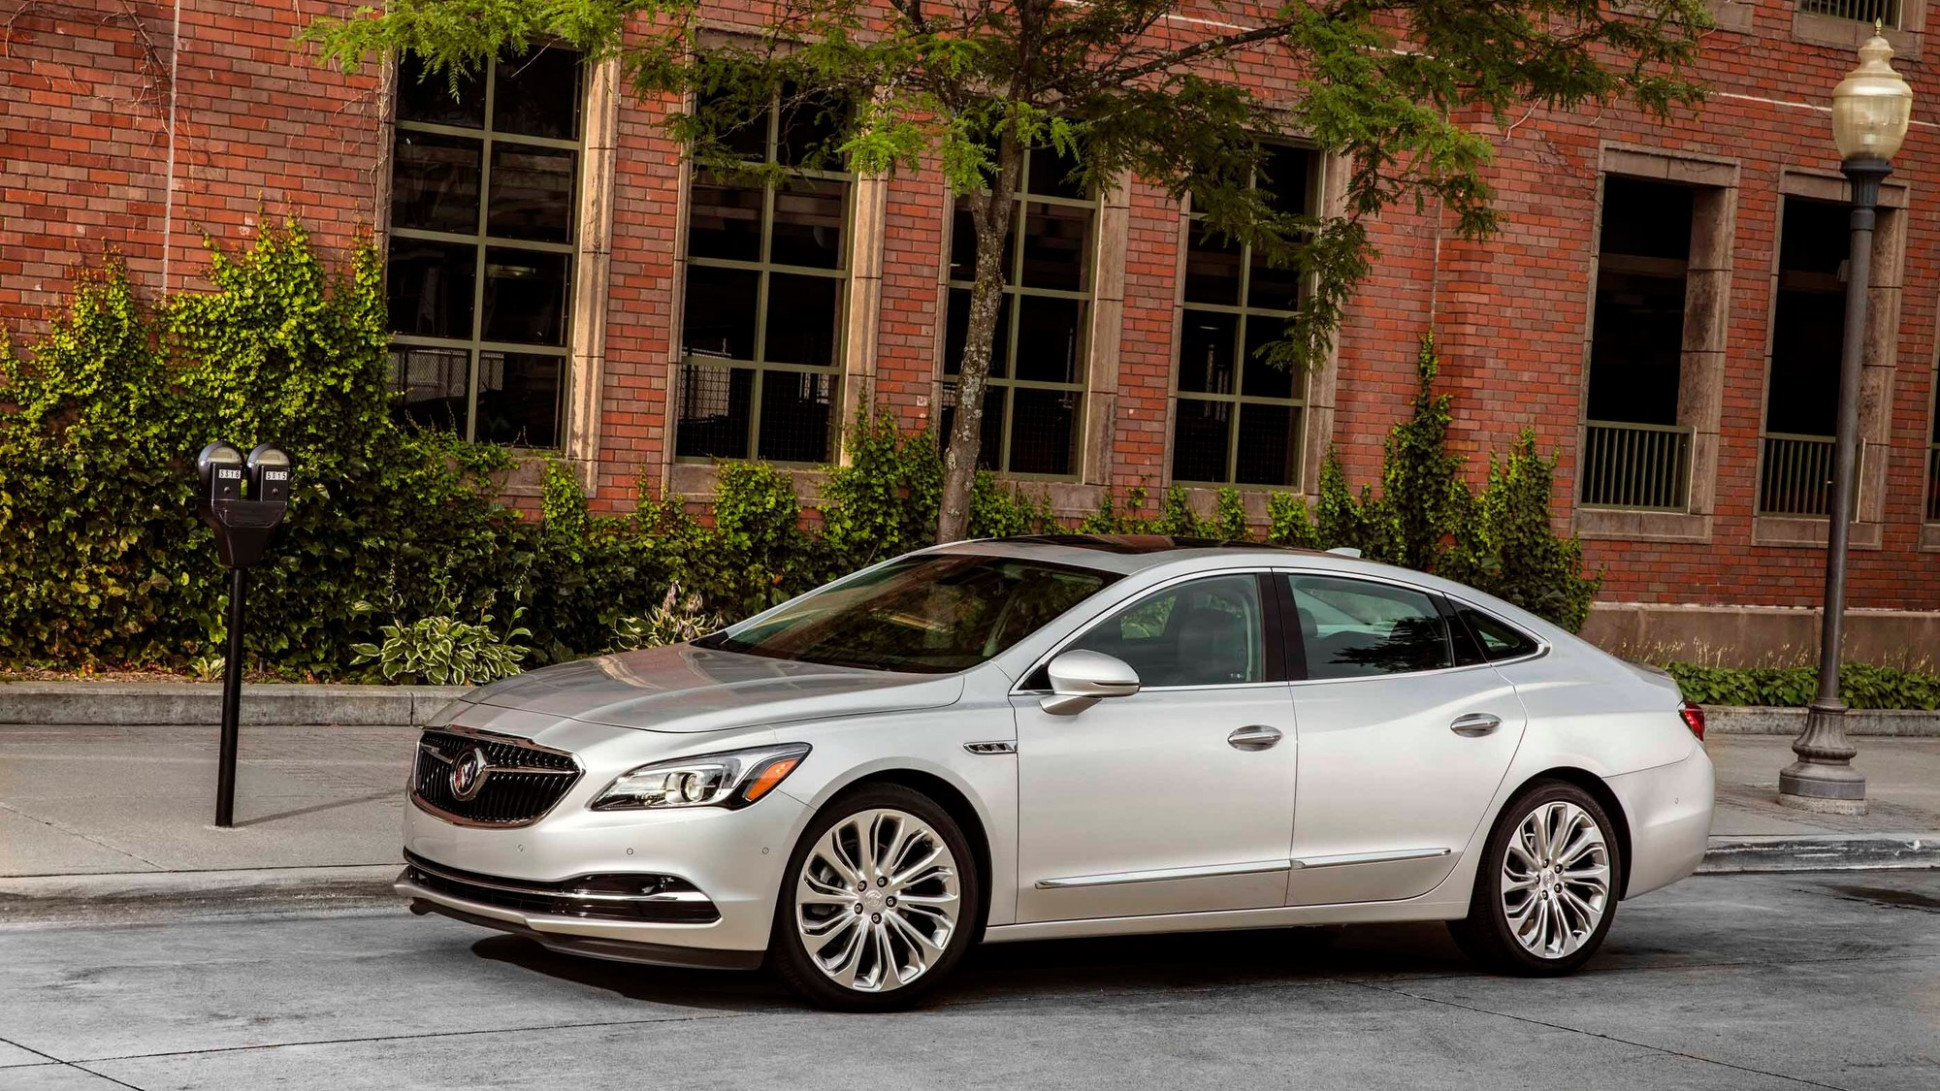 2022 buick lacrosse premium - cars review : cars review